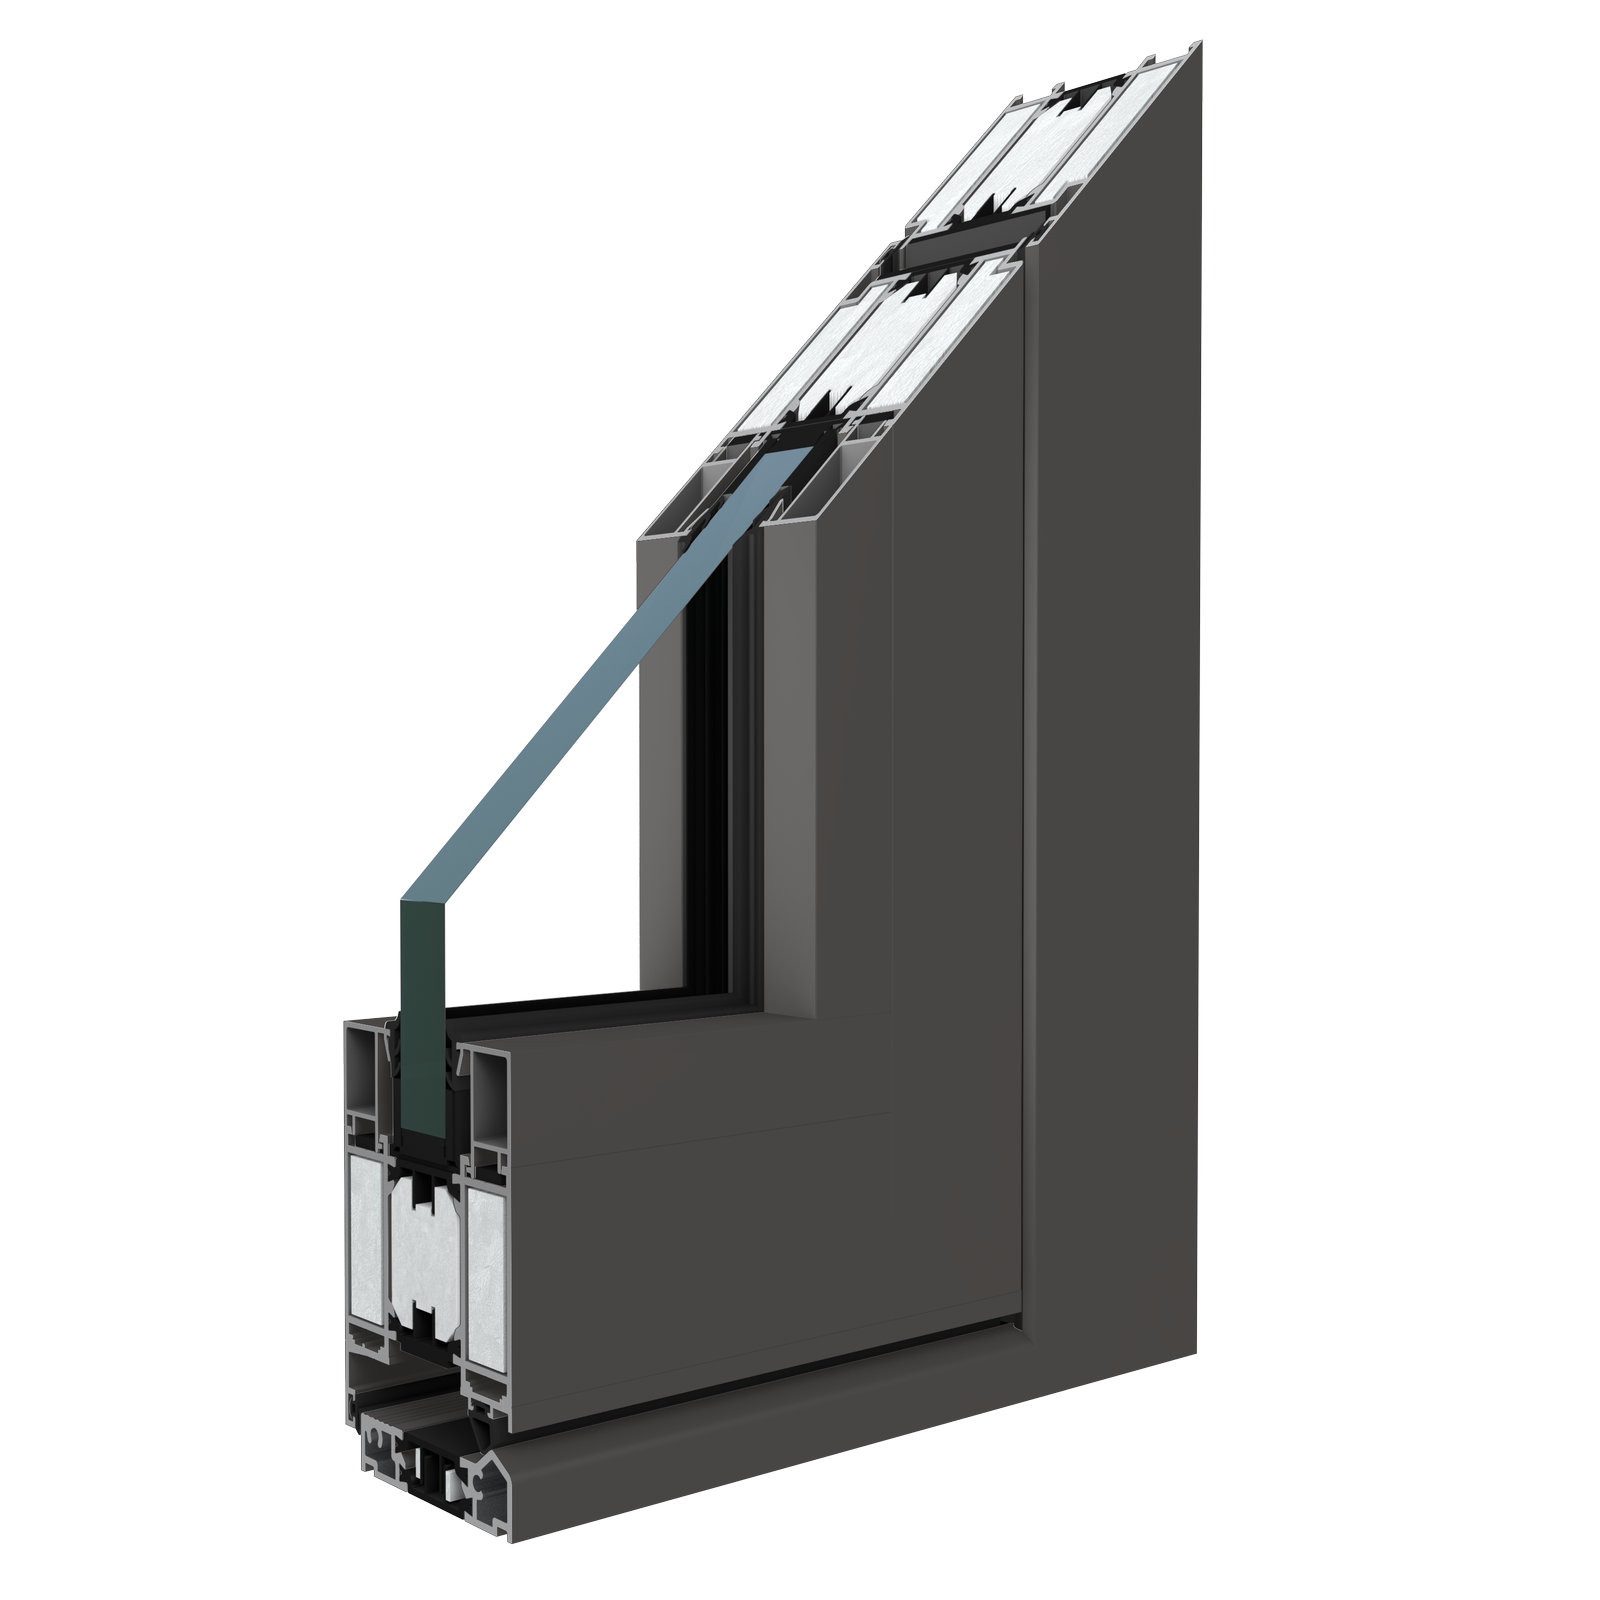 The MB-78EI system structure is based on insulated thermal aluminum profiles with depth 78mm.